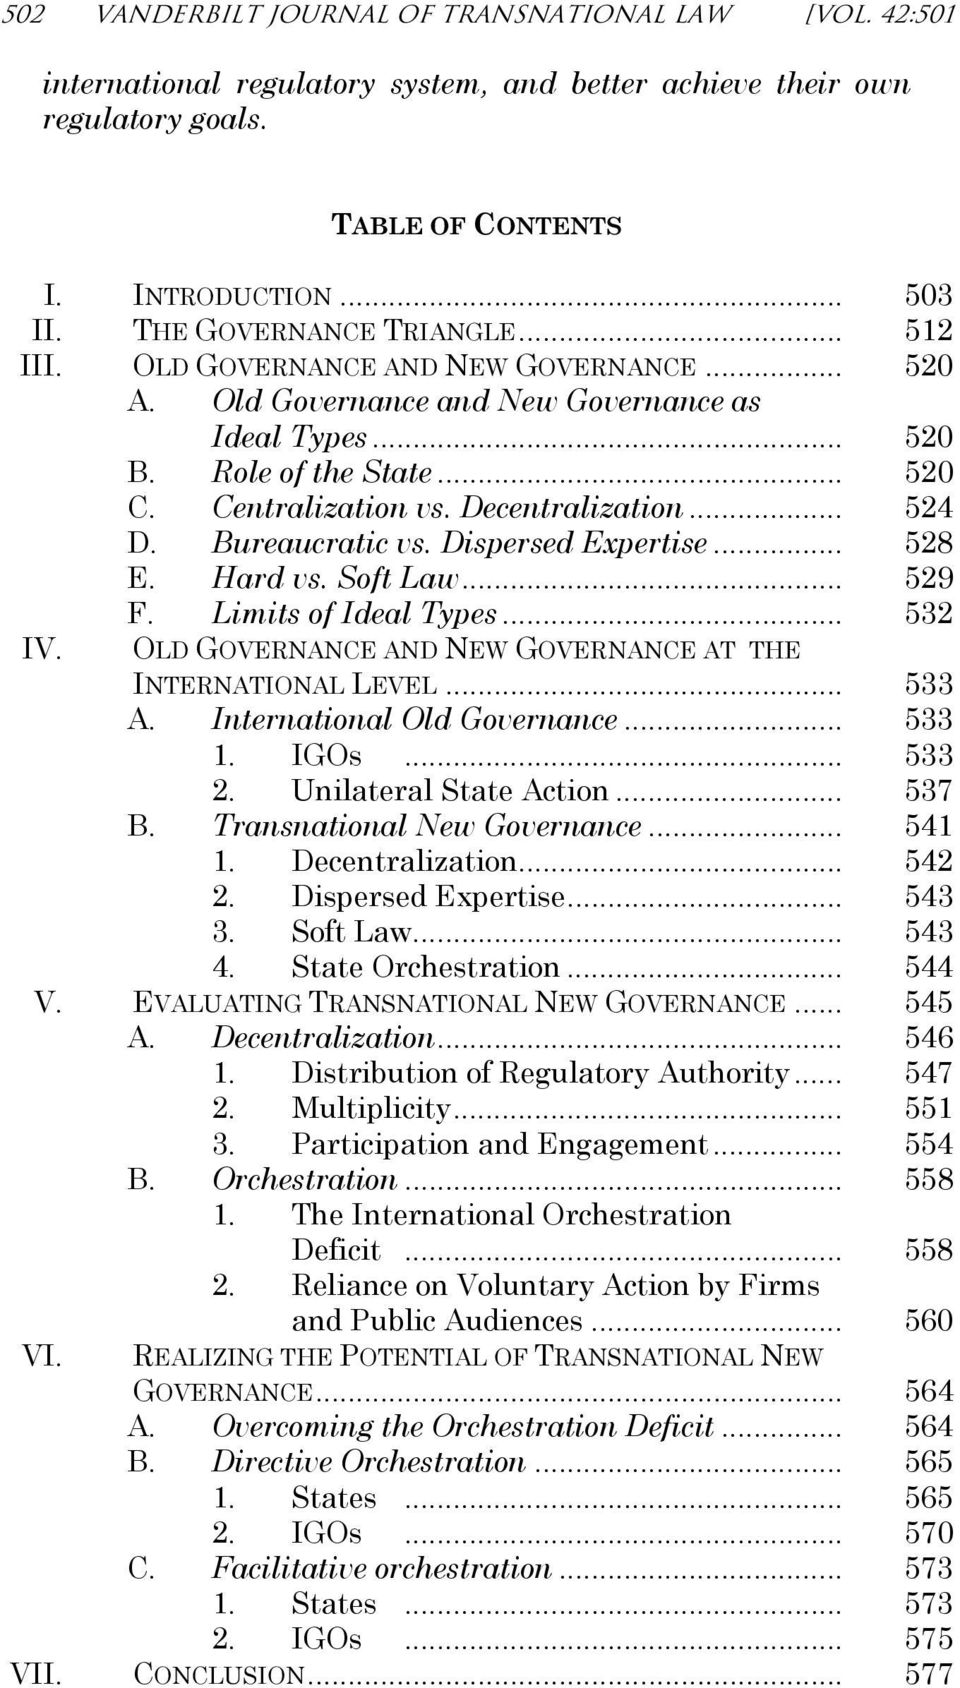 Decentralization... 524 D. Bureaucratic vs. Dispersed Expertise... 528 E. Hard vs. Soft Law... 529 F. Limits of Ideal Types... 532 IV. OLD GOVERNANCE AND NEW GOVERNANCE AT THE INTERNATIONAL LEVEL.